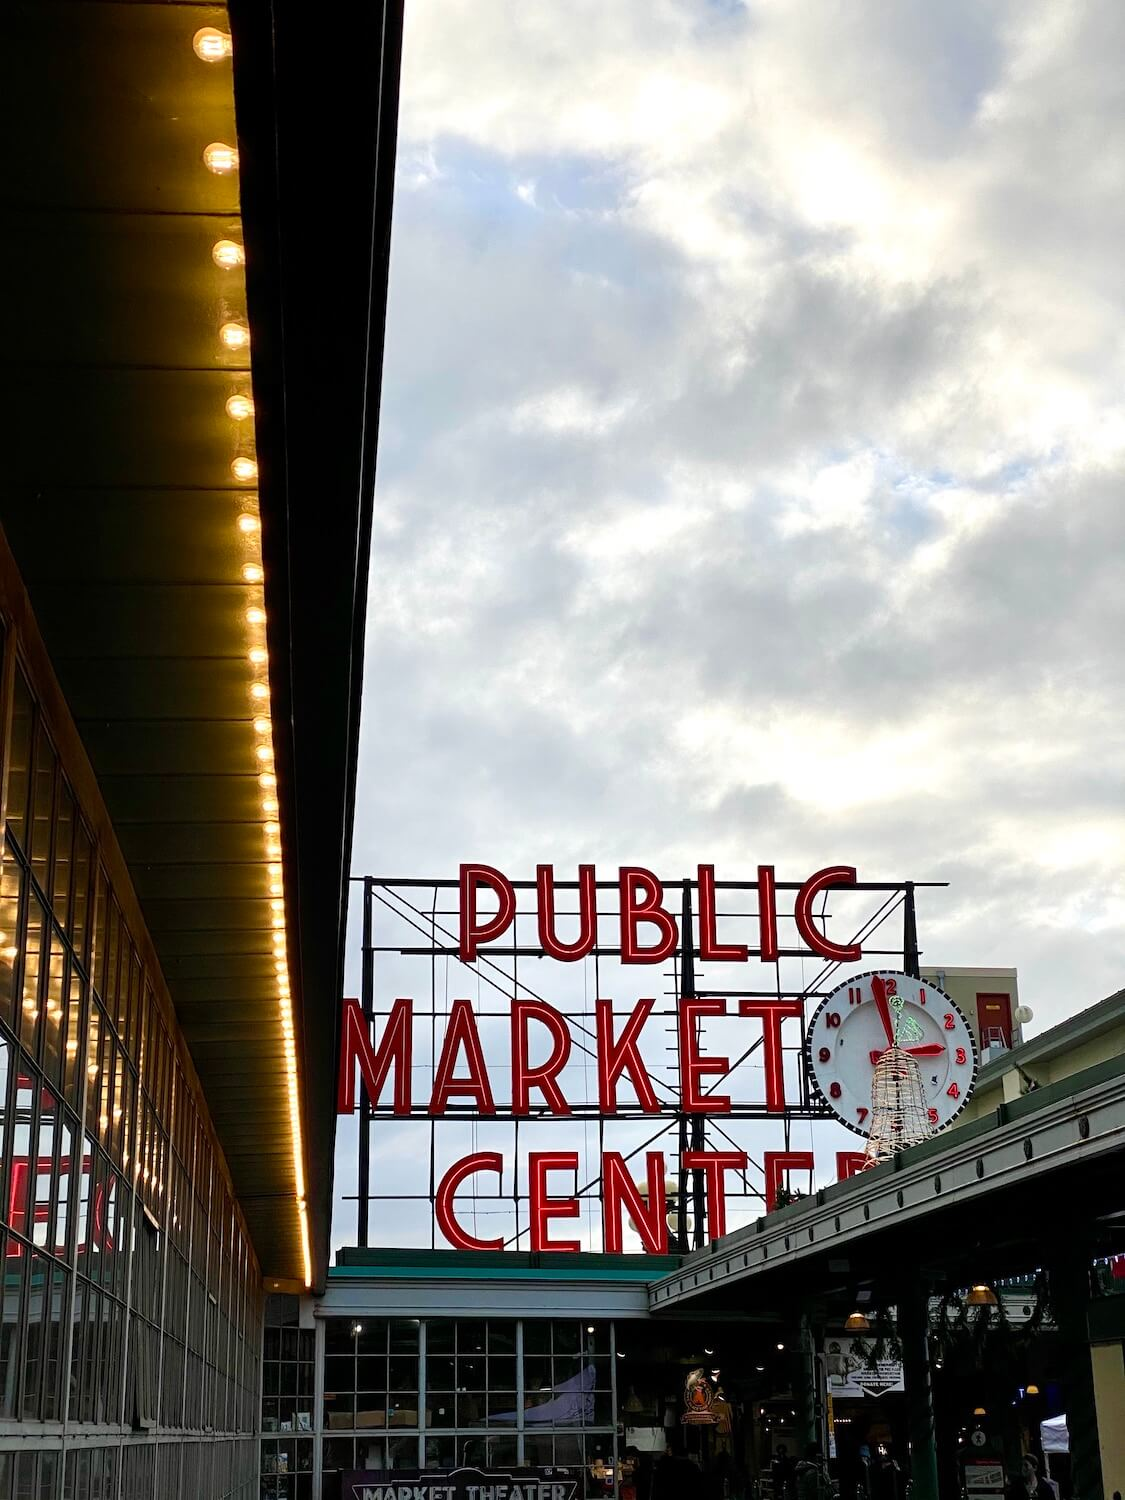 """Pike Place Market sets up a moody scene with a string of light bulbs leading to the giant red neon sign that says, """"Public Market Center.""""  The clouds are a swirl of gray above."""